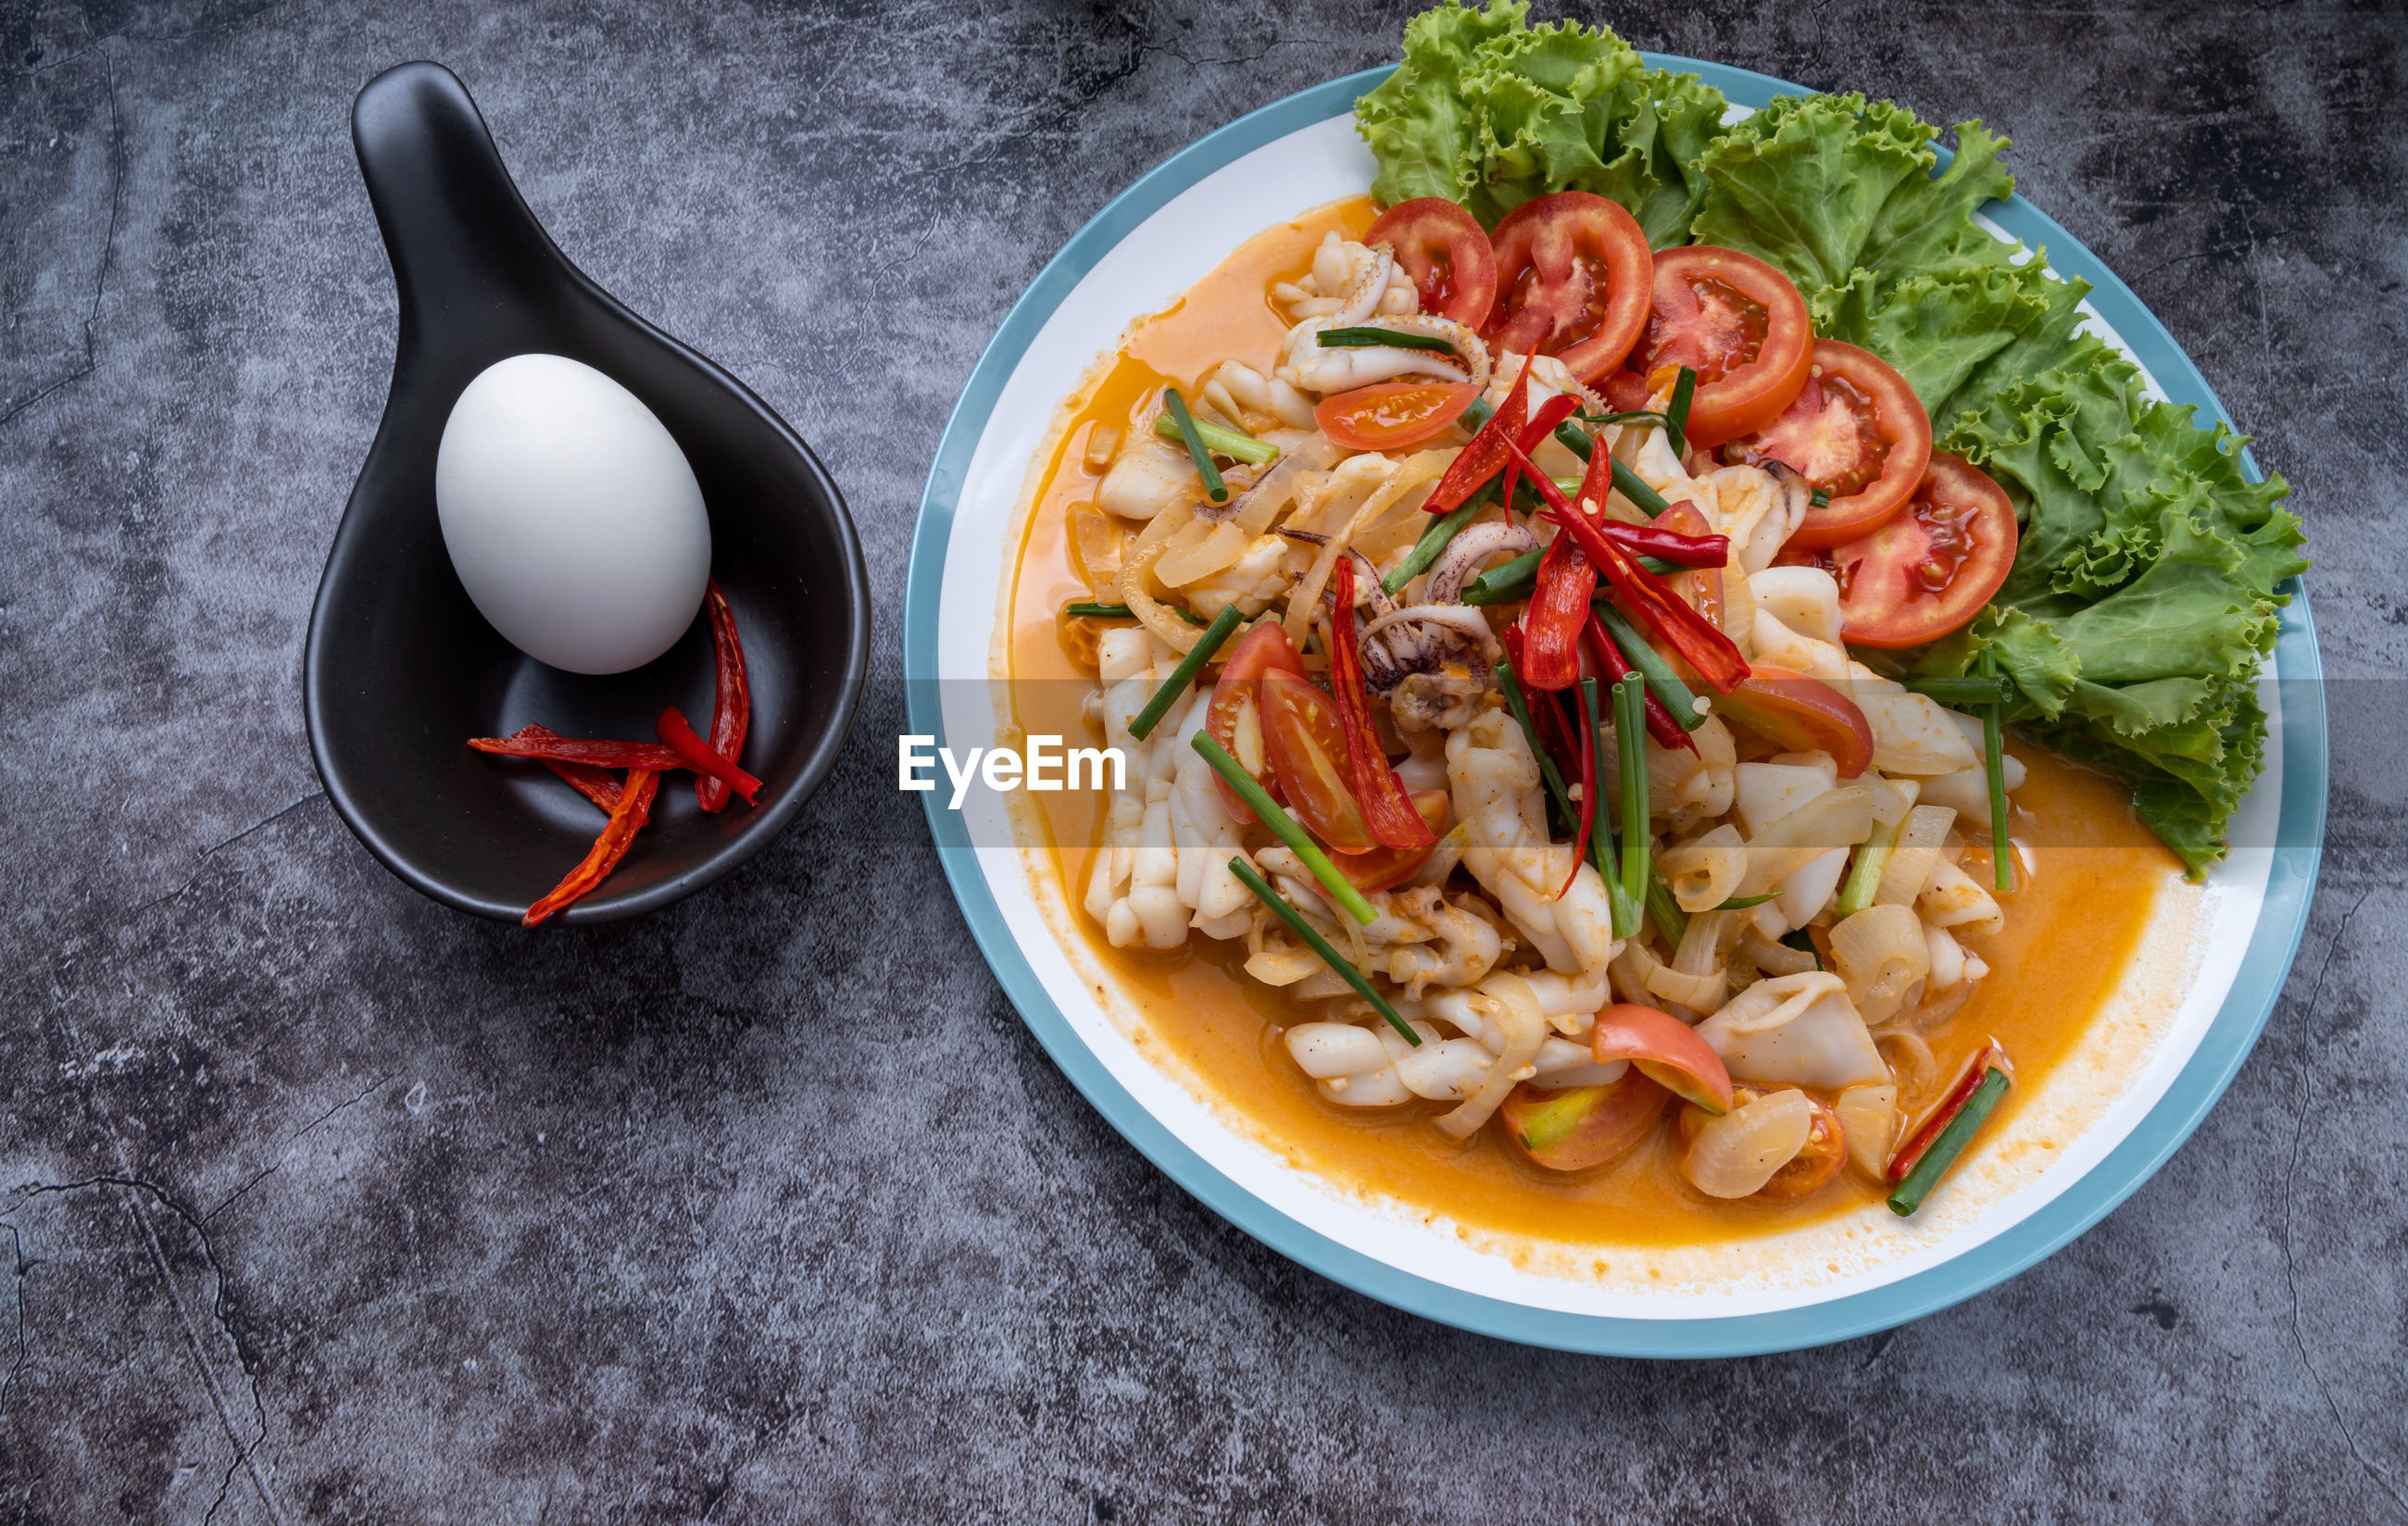 Stir-fried squid with salted egg yolk, onion, spring onion and chili pepper on white plate.